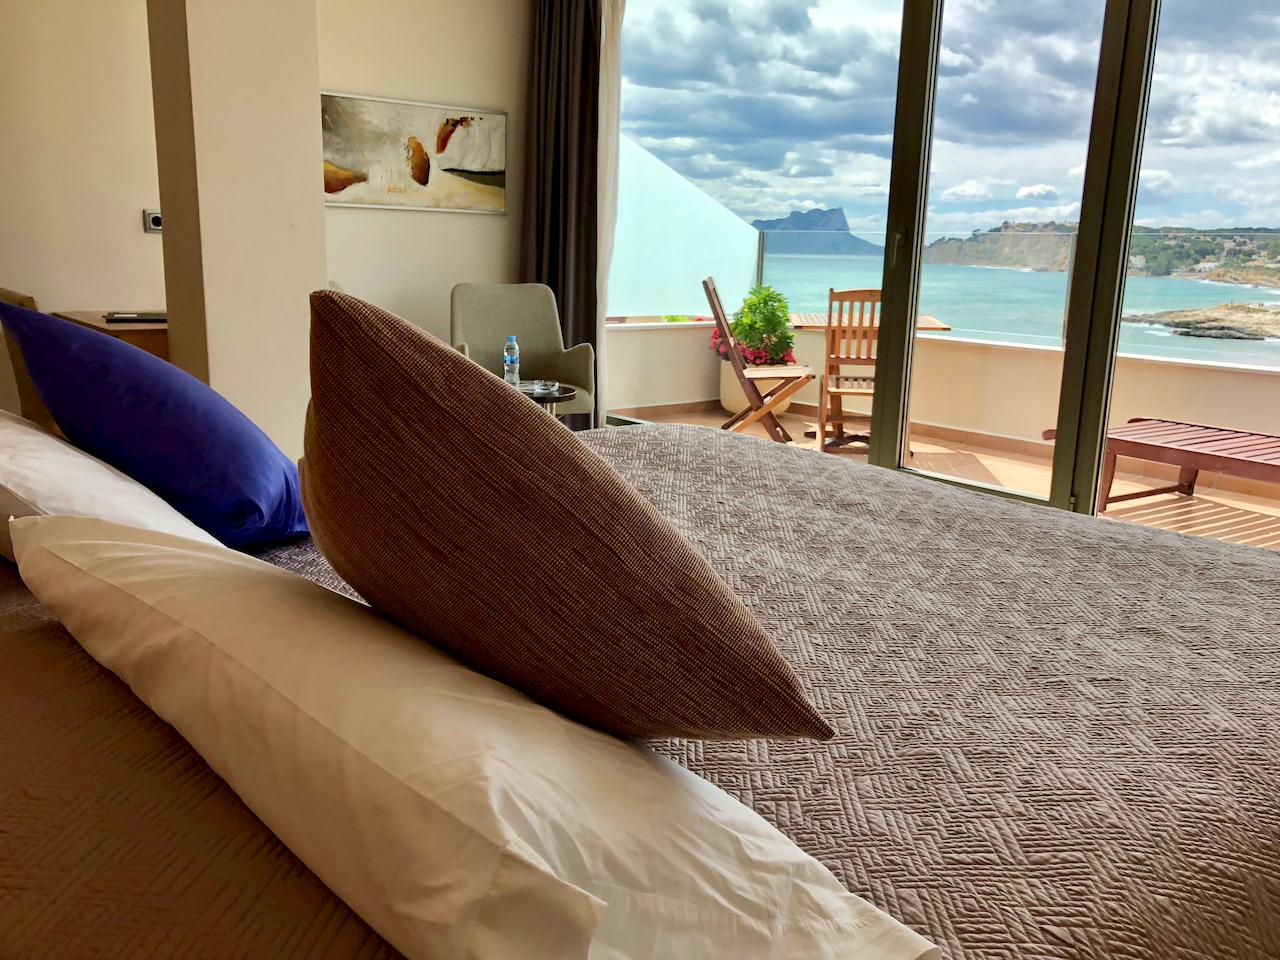 The LaSort Boutique Hotel is the best accommodation in Moraira